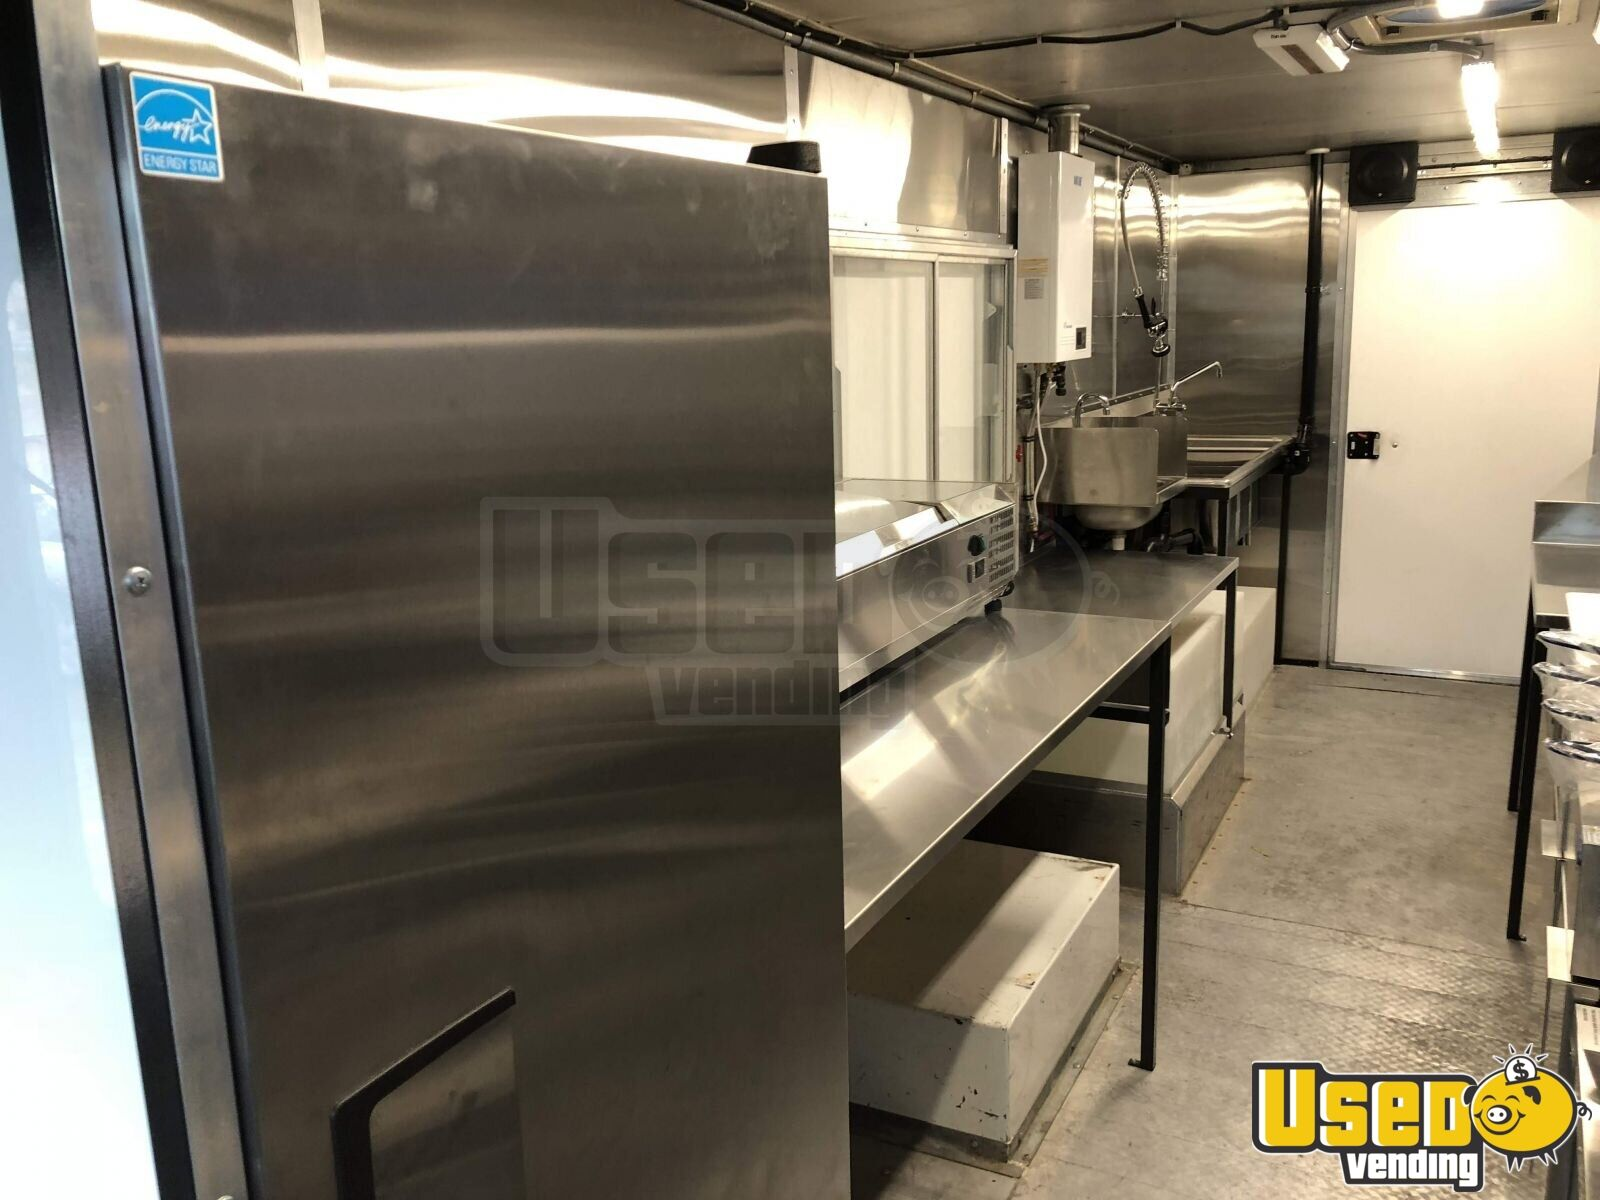 1996 Gmc All-purpose Food Truck Stainless Steel Wall Covers Washington for Sale - 4